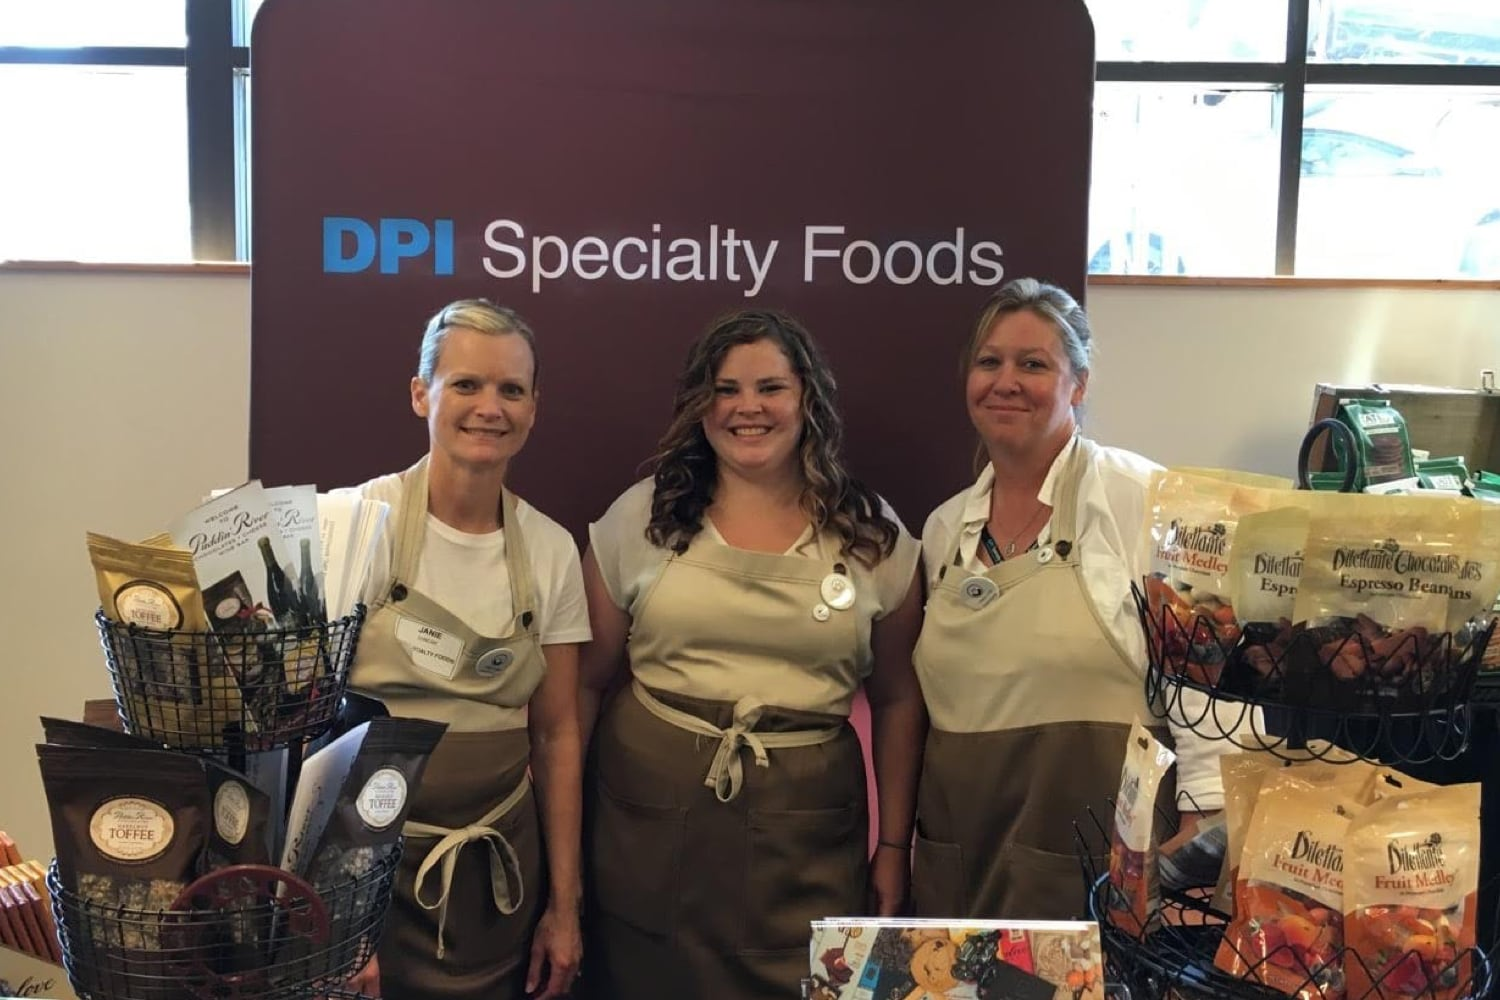 Group of three DPI Specialty Foods employees at their trade show booth